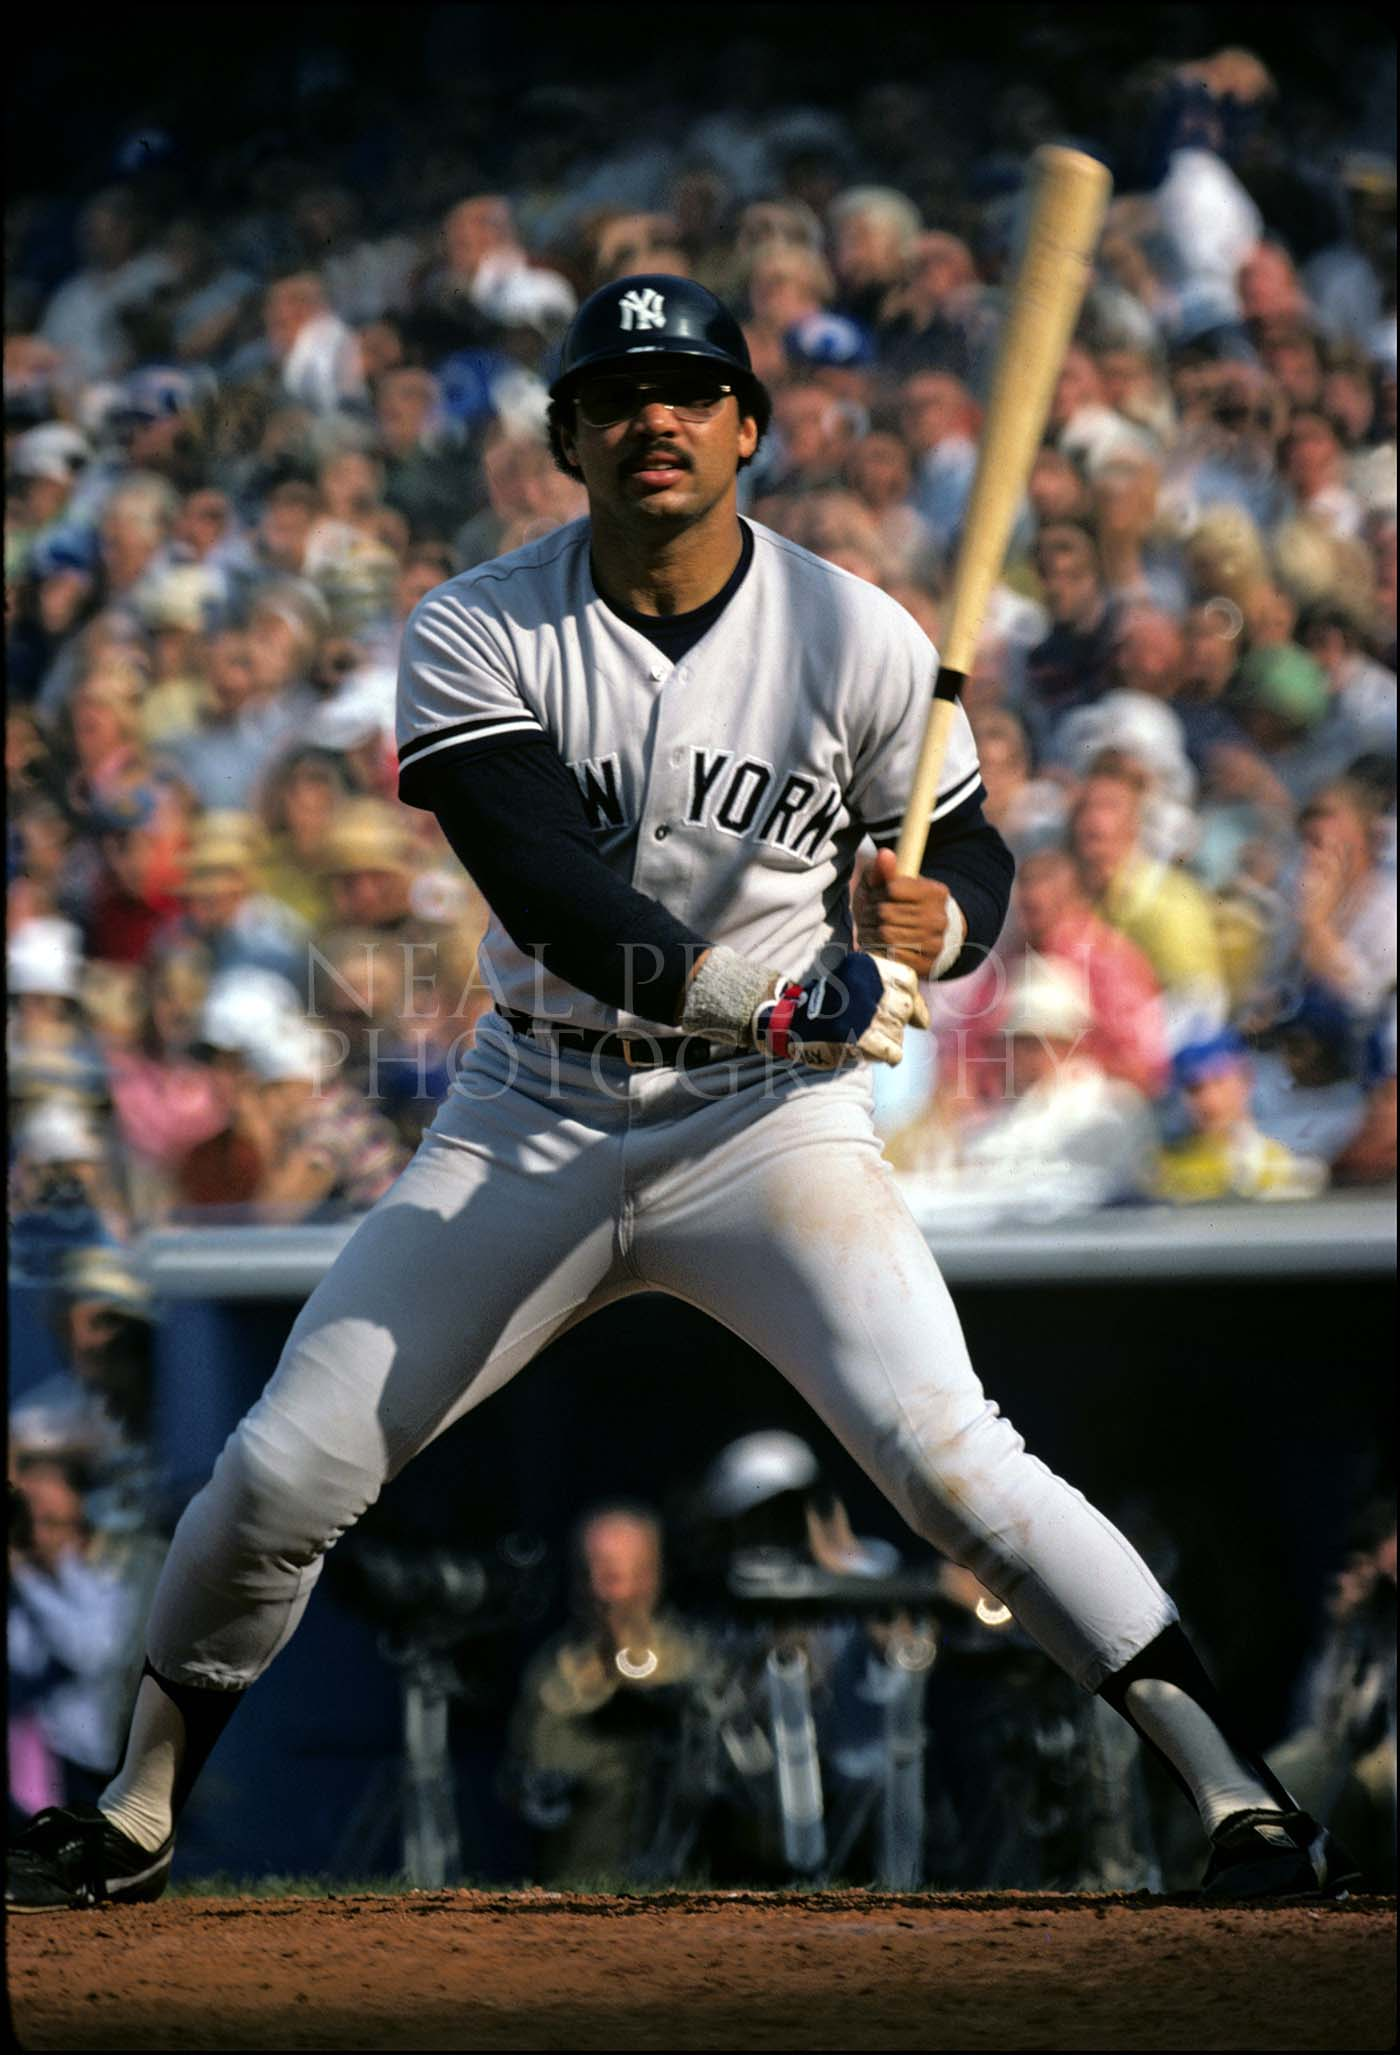 Reggie_Jackson_at_bat78.jpg